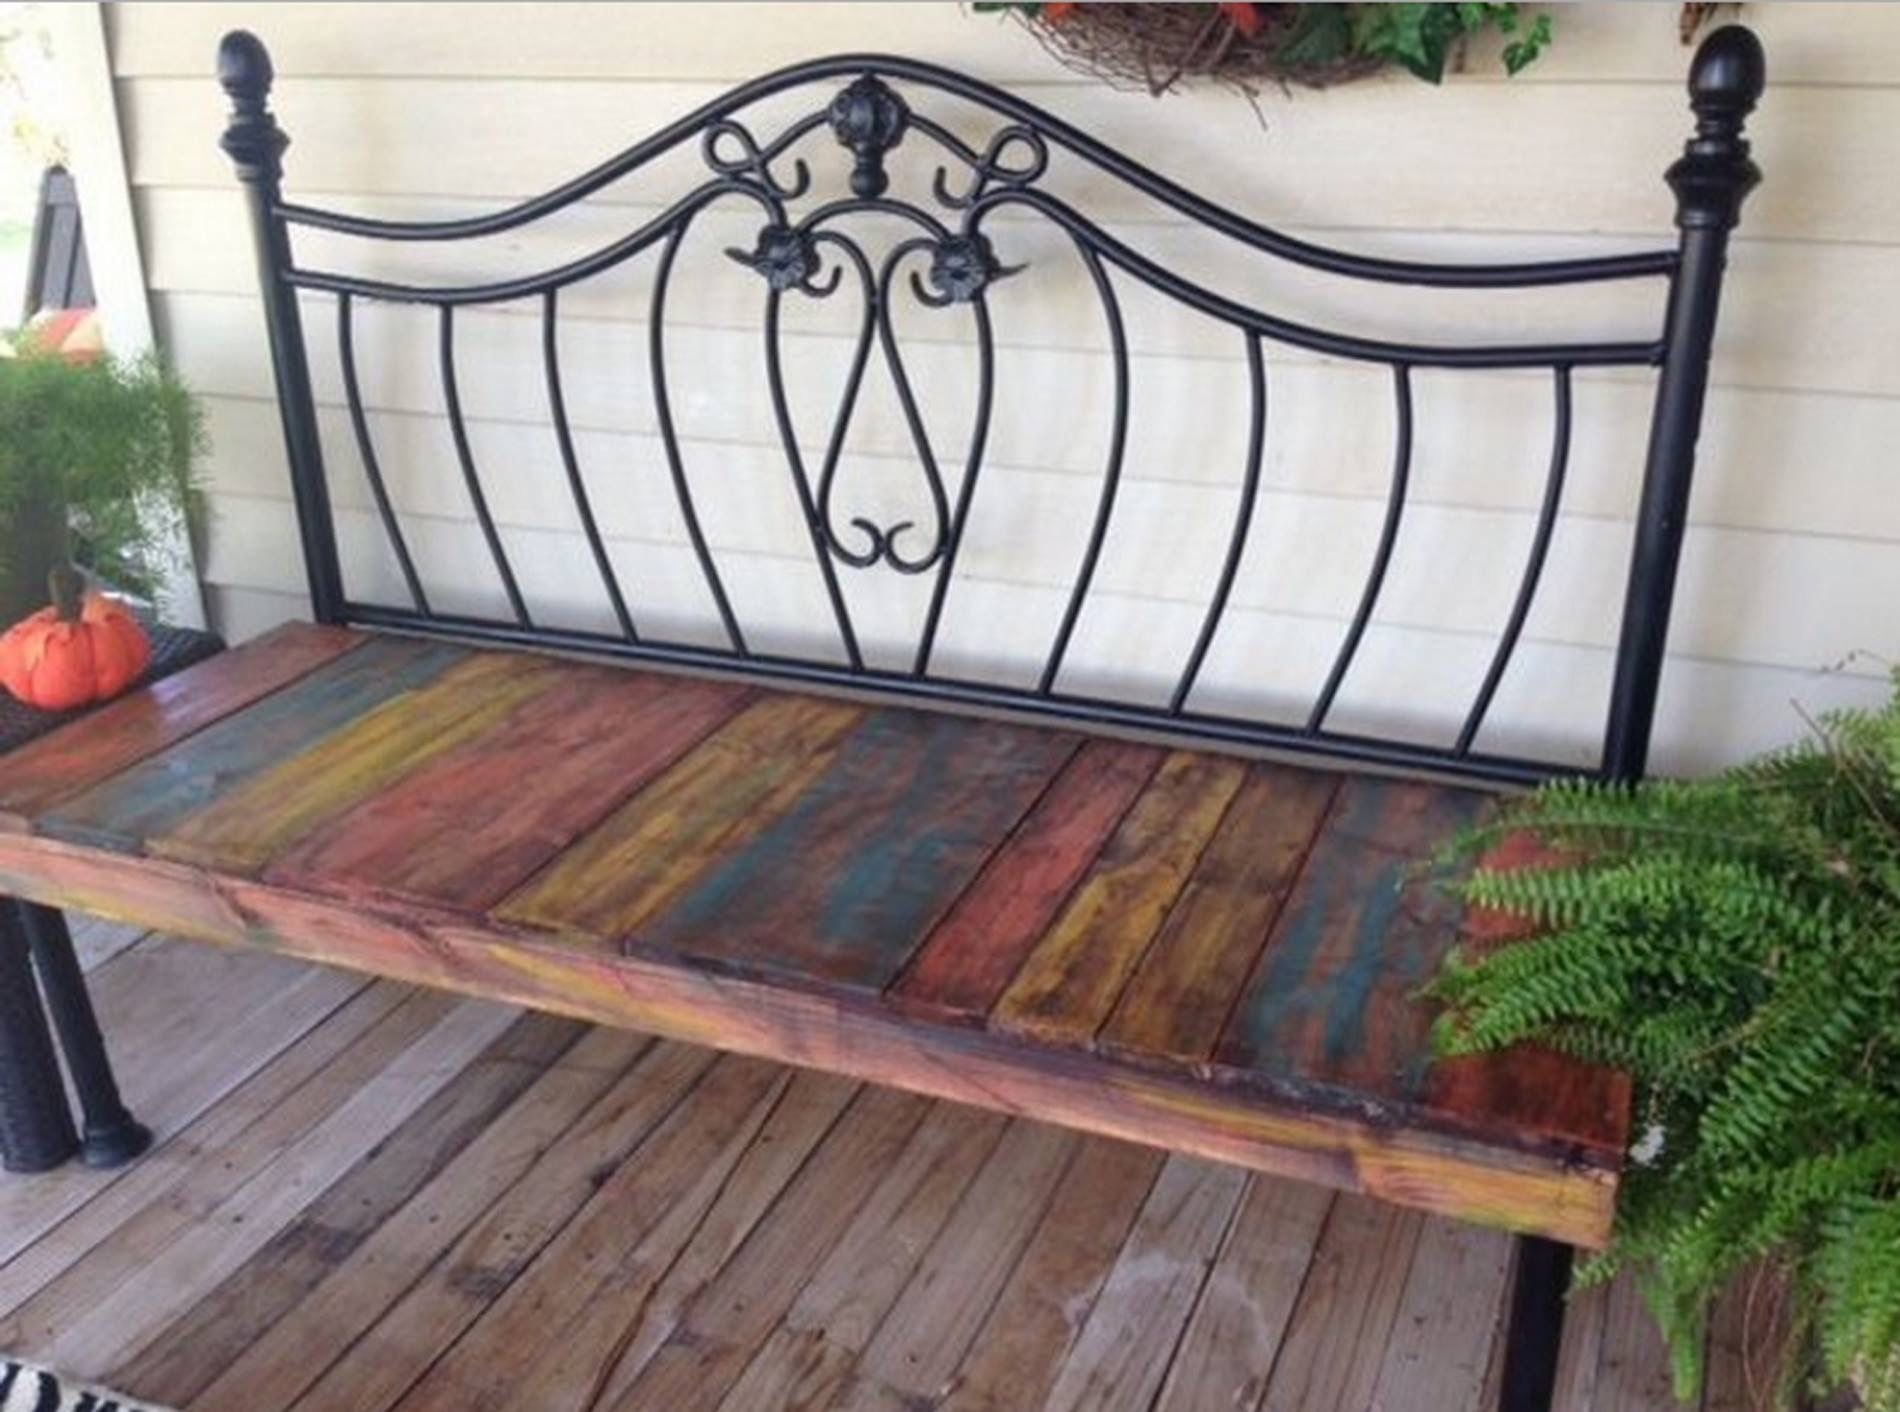 Victorianstyle day bed from a headboard and reclaimed